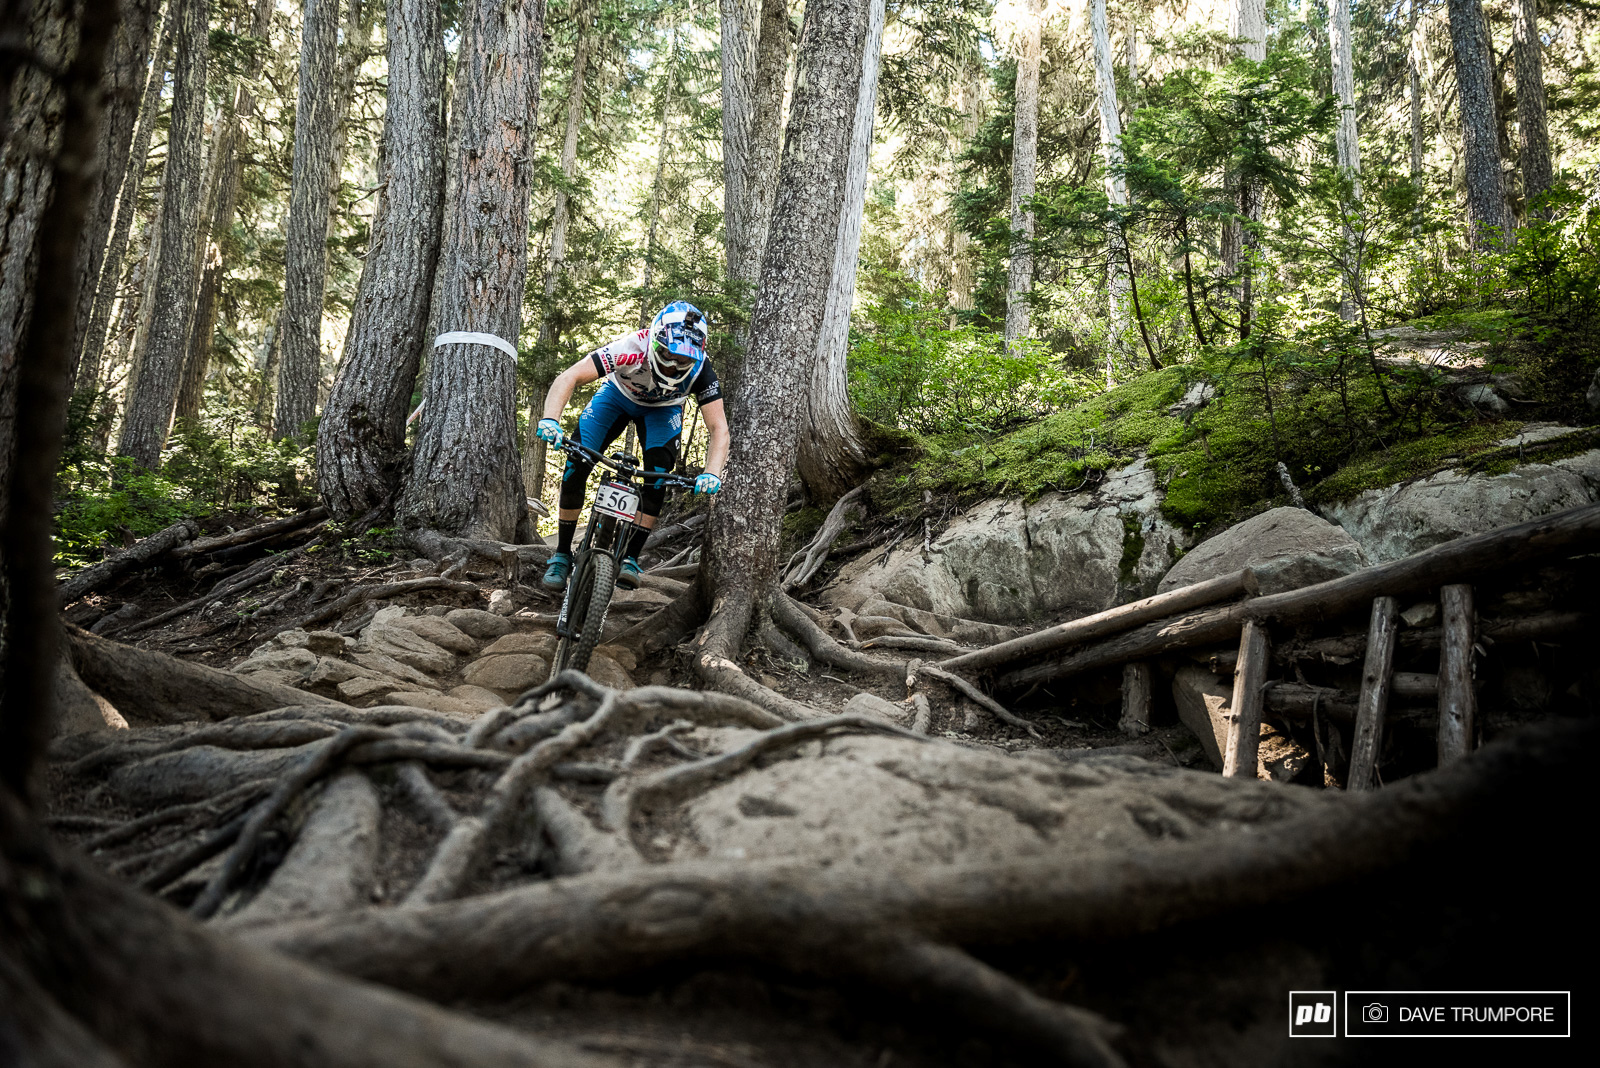 Josh Carlson swapped his enduro bike for a little extra DH bike muscle to tackle the super rough Garbo track.